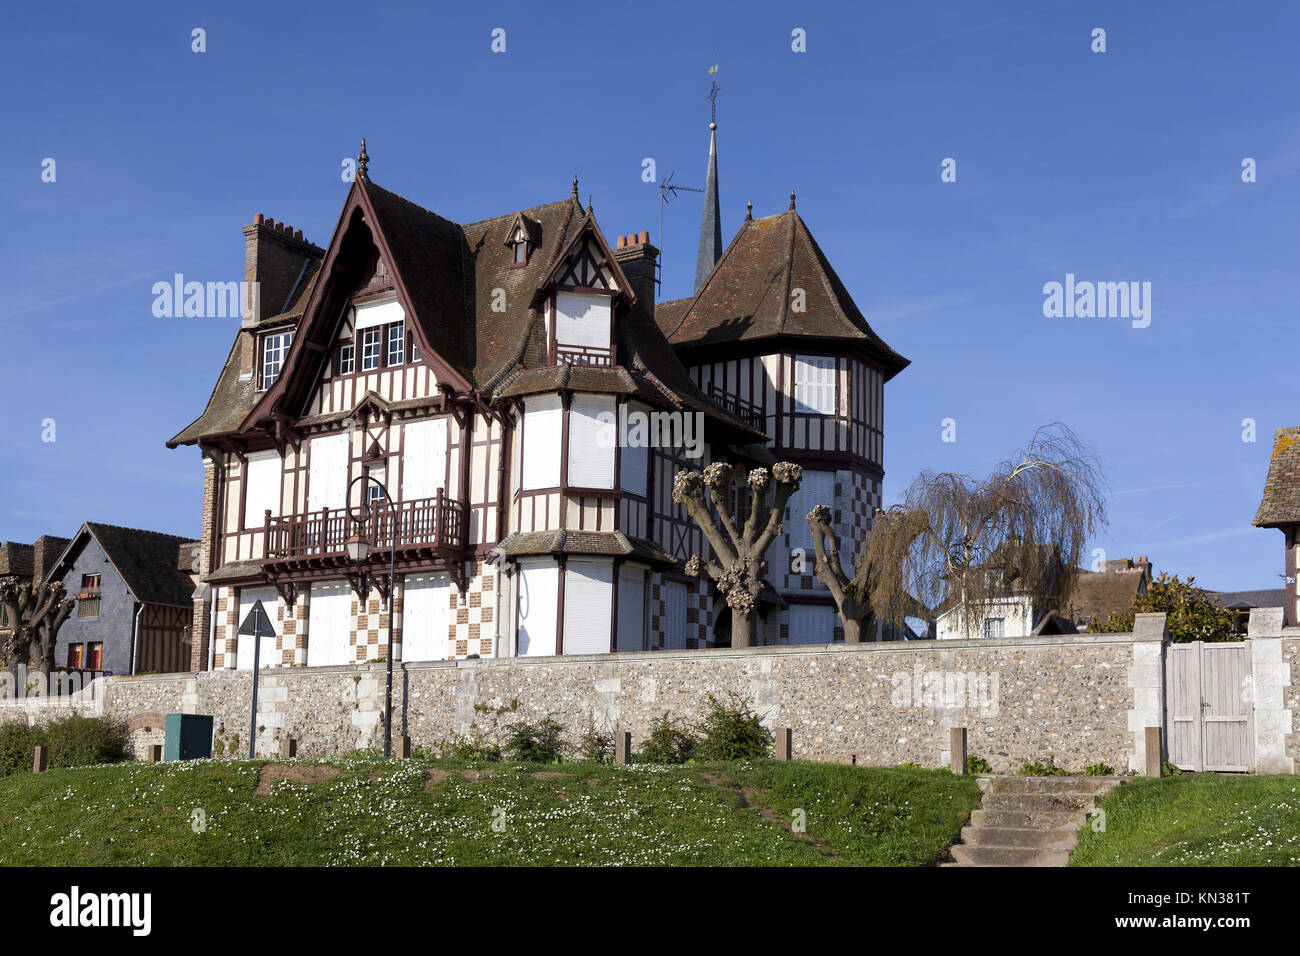 House In Les Andelys Eure Haute Normandie France Stock Photo Alamy